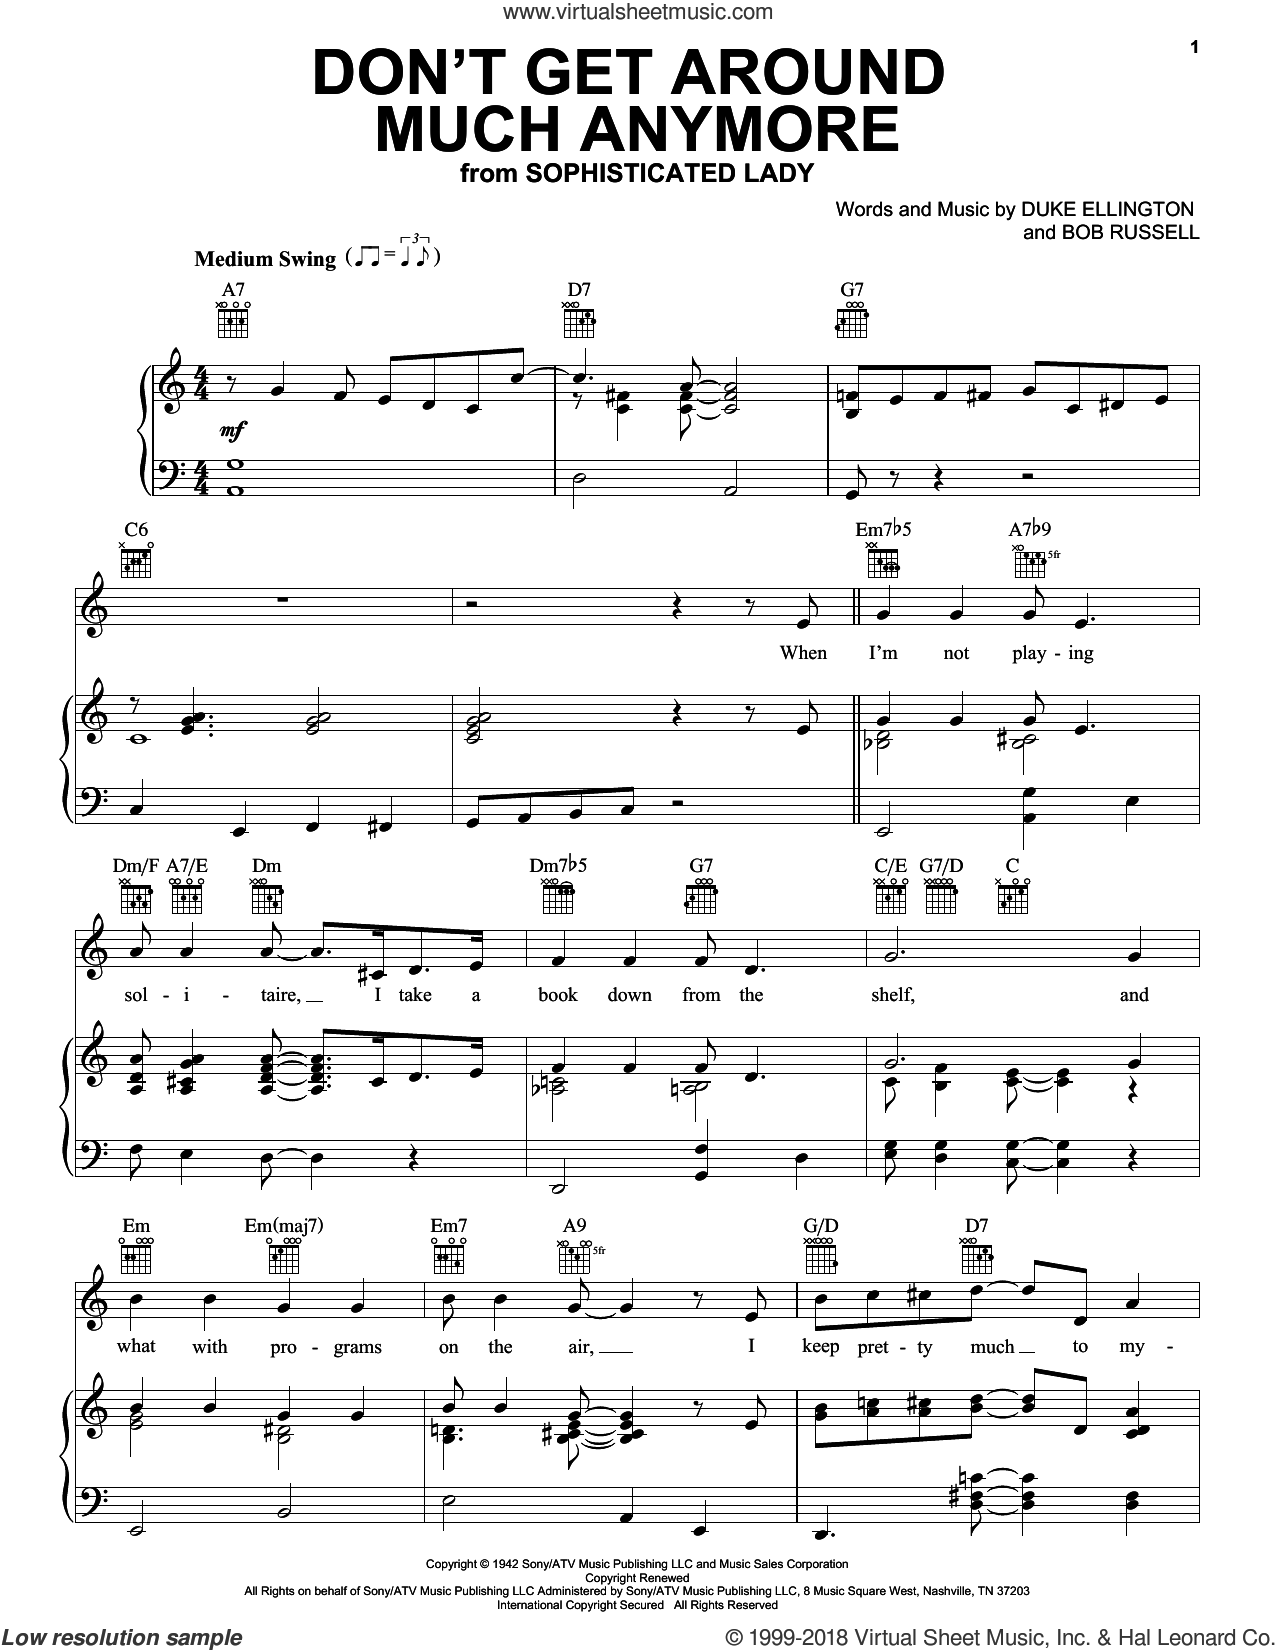 Don't Get Around Much Anymore sheet music for voice, piano or guitar by Duke Ellington, Rod Stewart and Bob Russell, intermediate. Score Image Preview.